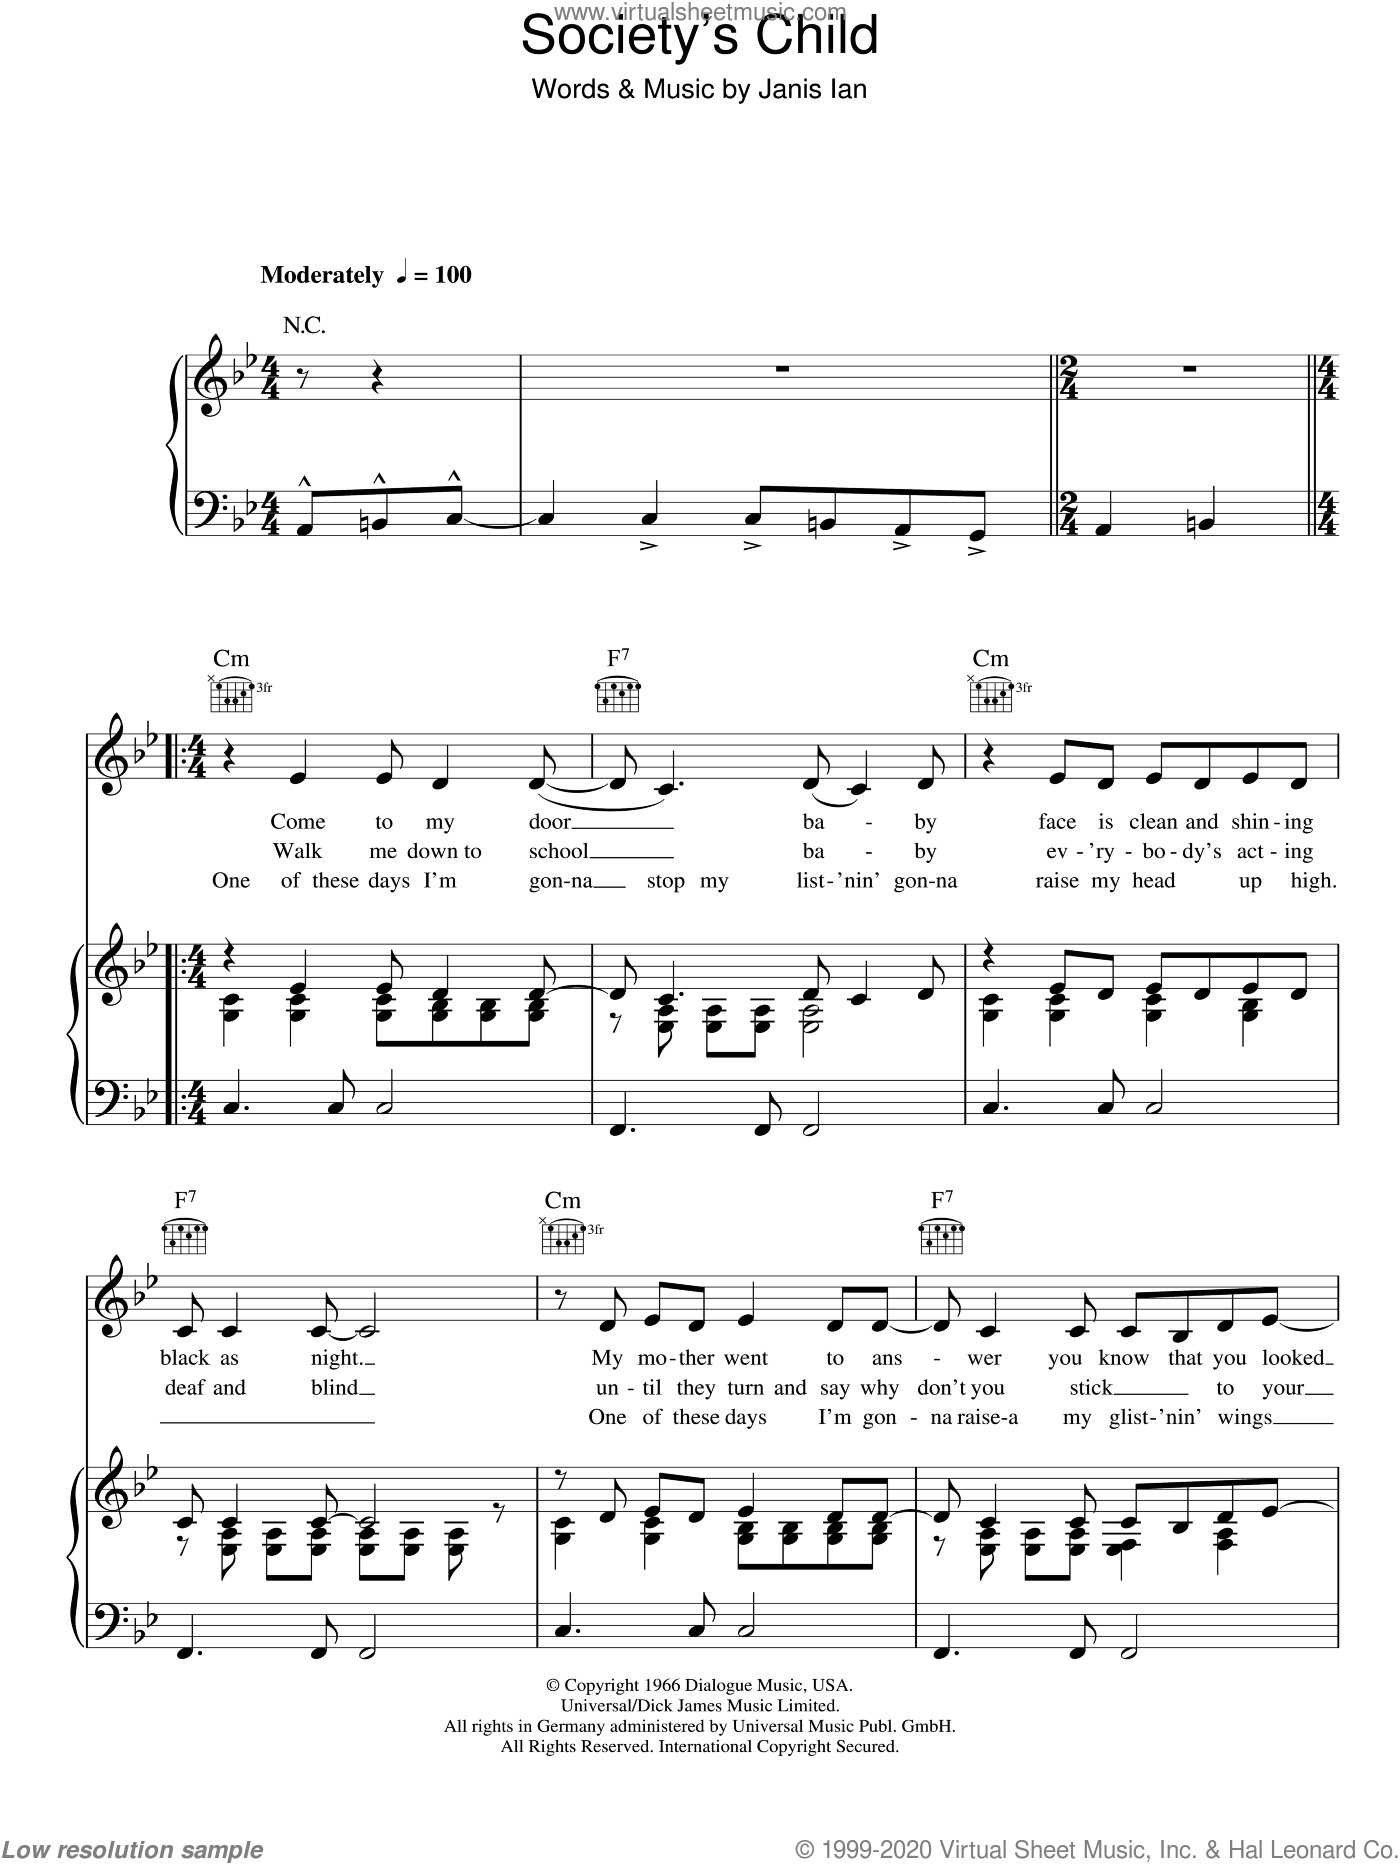 Society's Child sheet music for voice, piano or guitar by Janis Ian, intermediate skill level